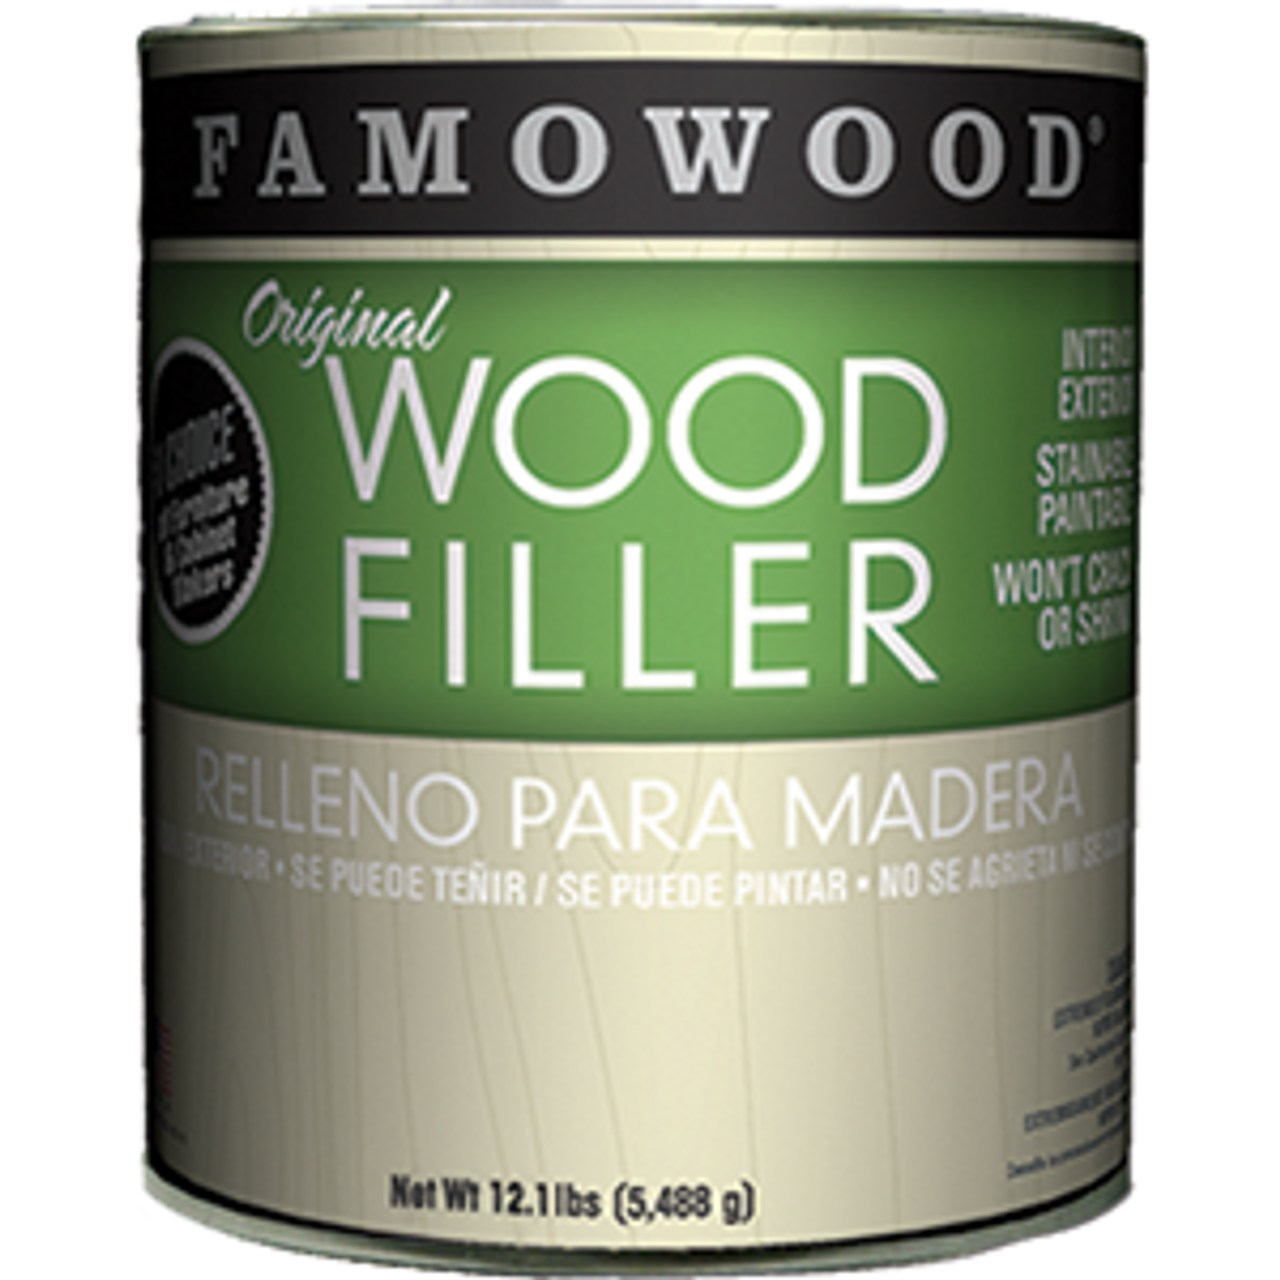 FAMOWOOD 36001106 1G BIRCH WOOD FILLER